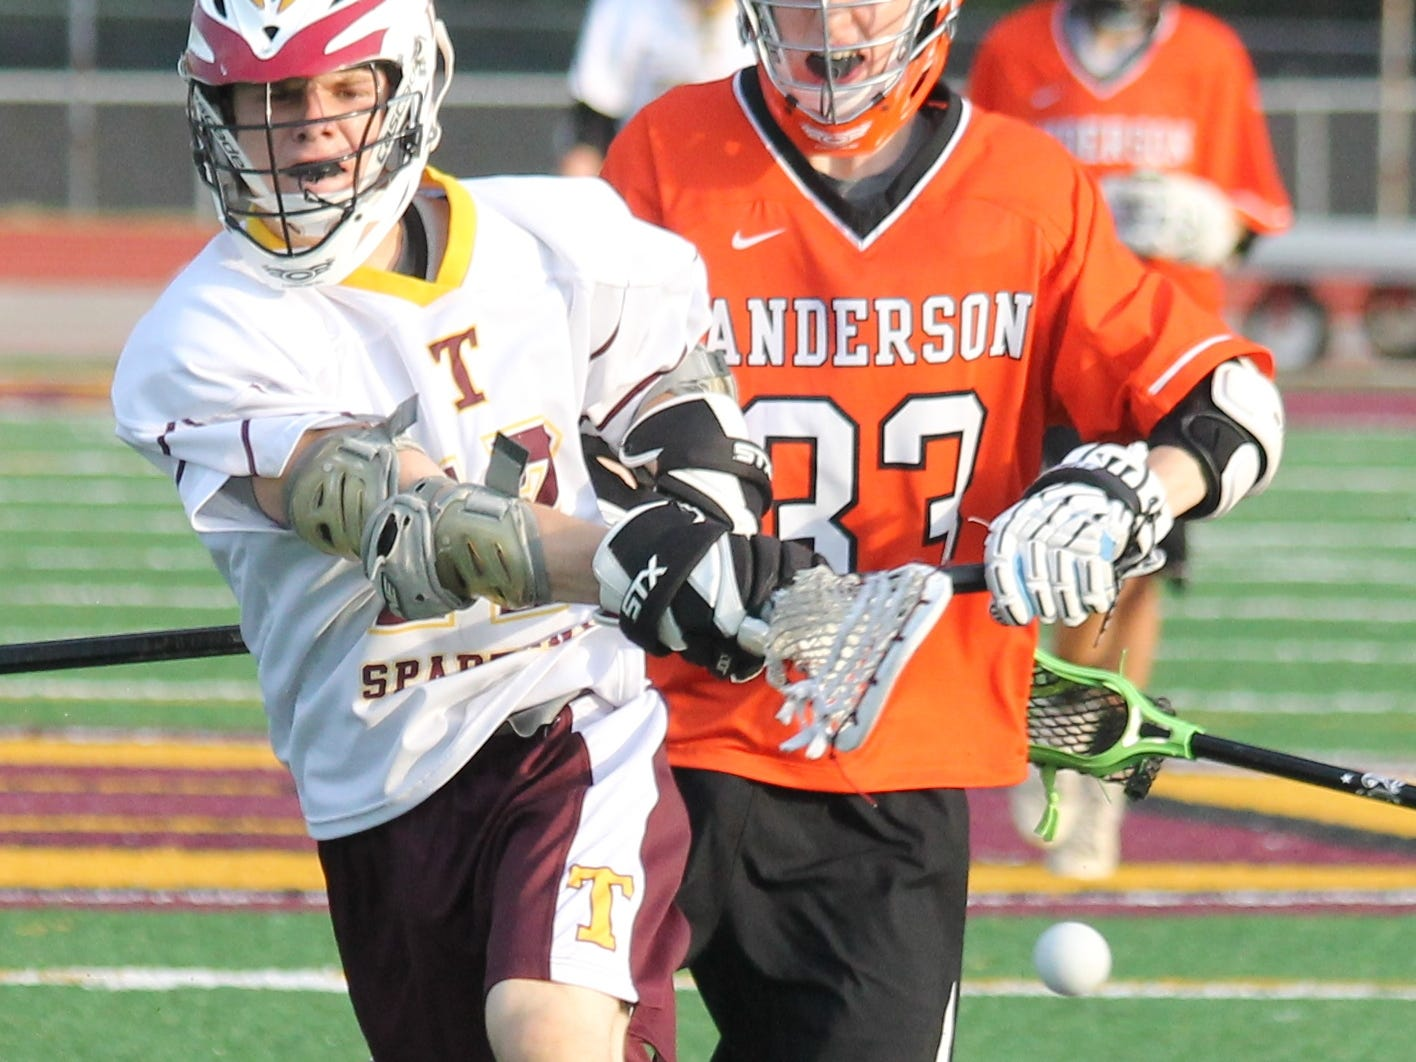 Turpin sophomore Nate Hooper whips a shot on goal and scores in the Spartans' 15-9 win against Anderson.